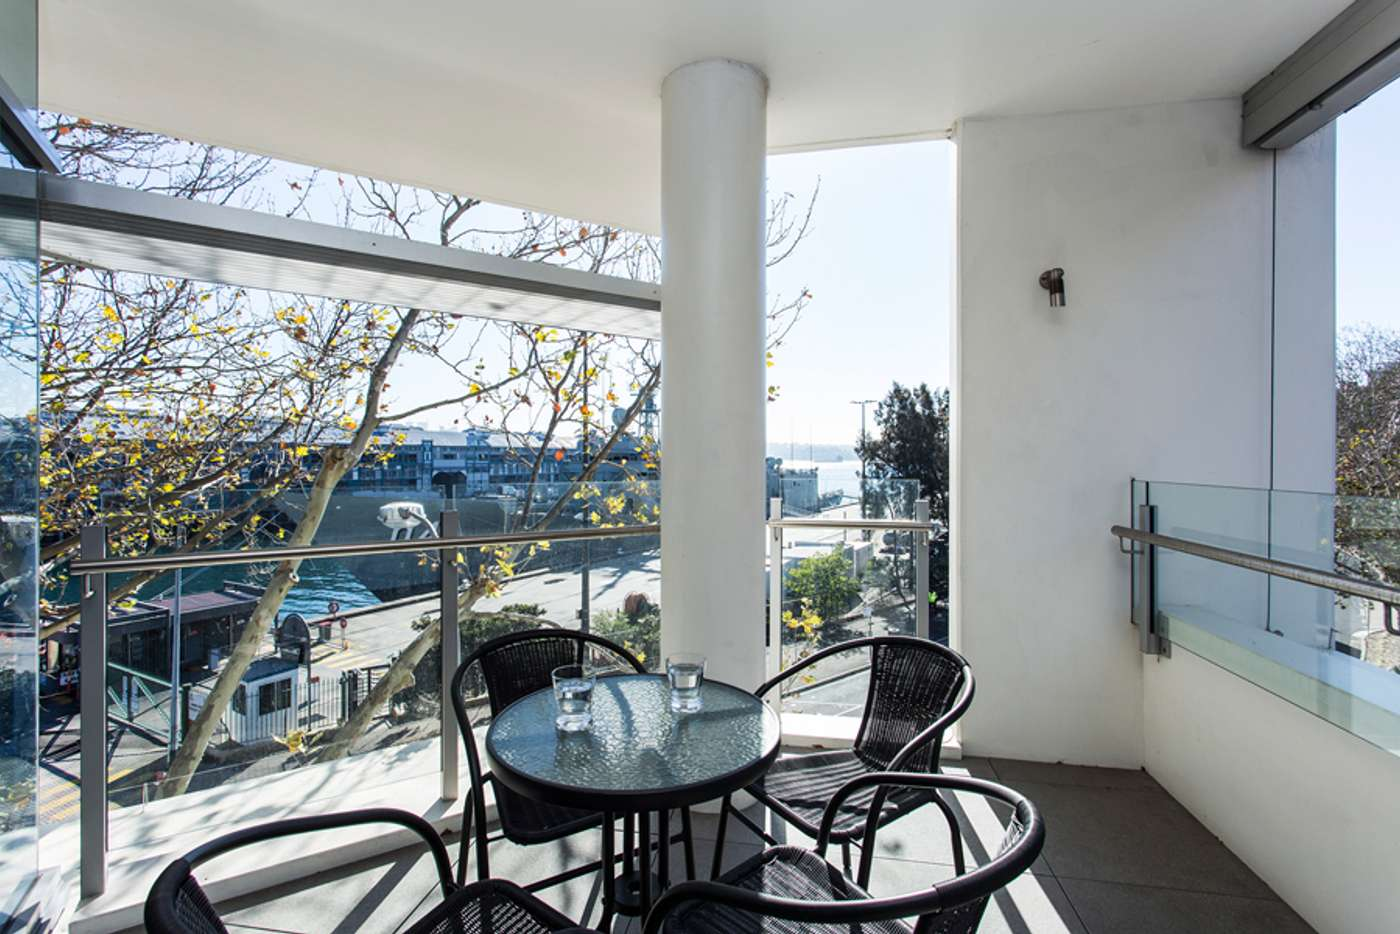 Main view of Homely apartment listing, 304/65 Cowper Wharf Roadway, Woolloomooloo NSW 2011